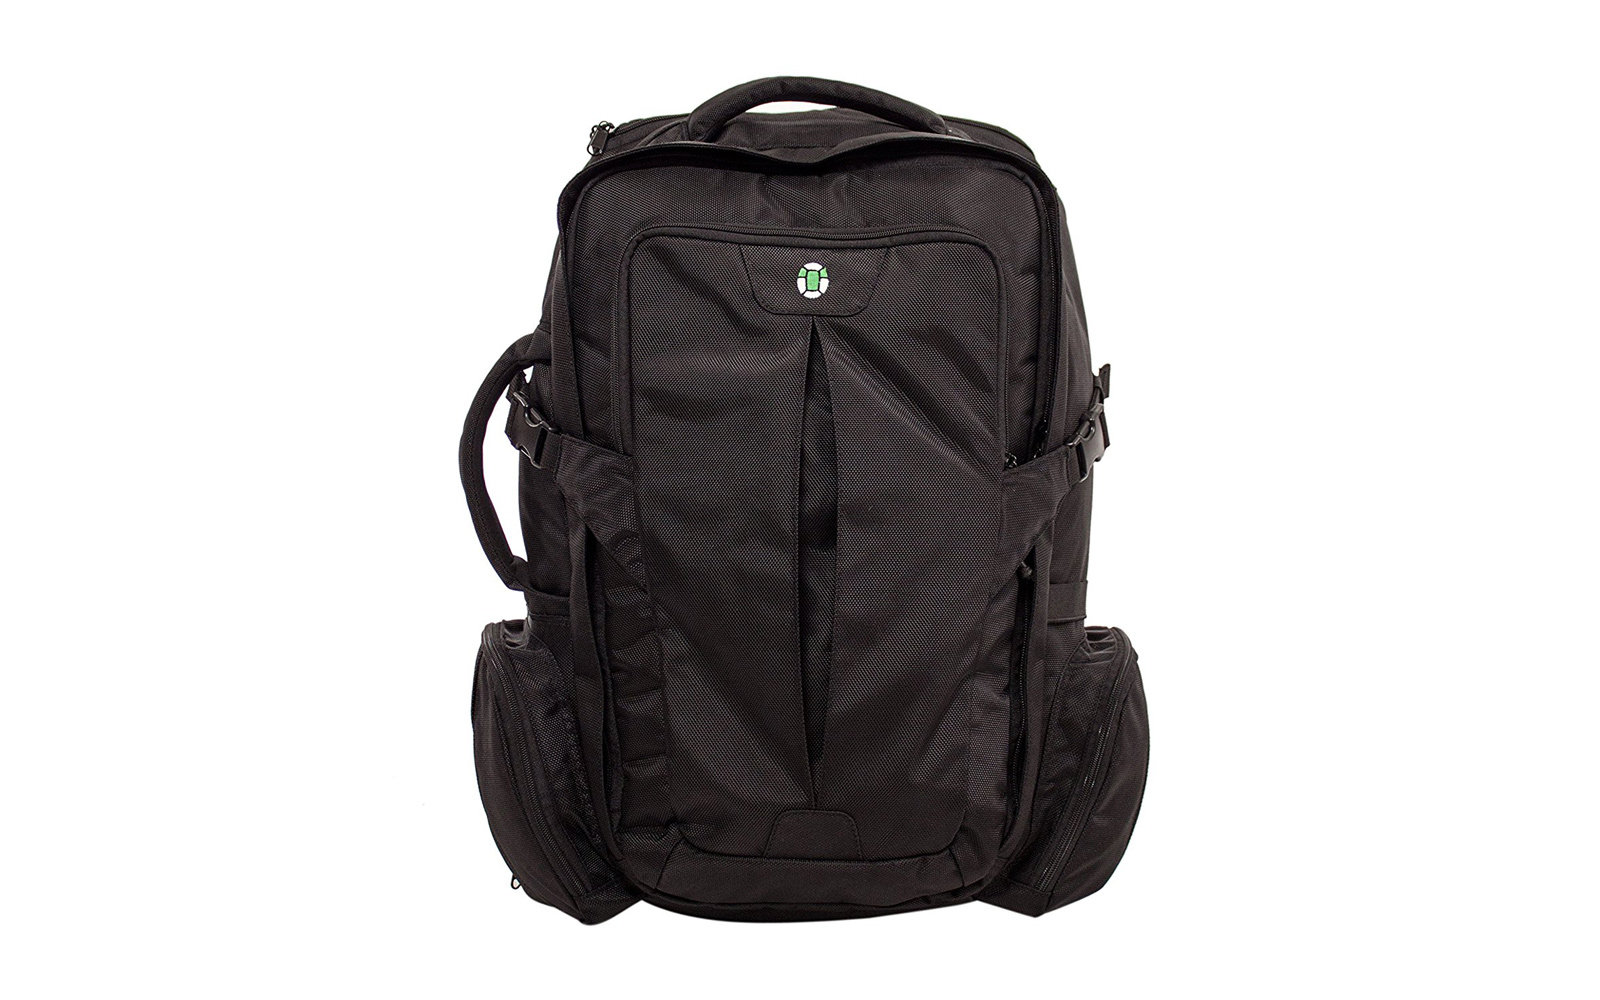 Totuga Backpack